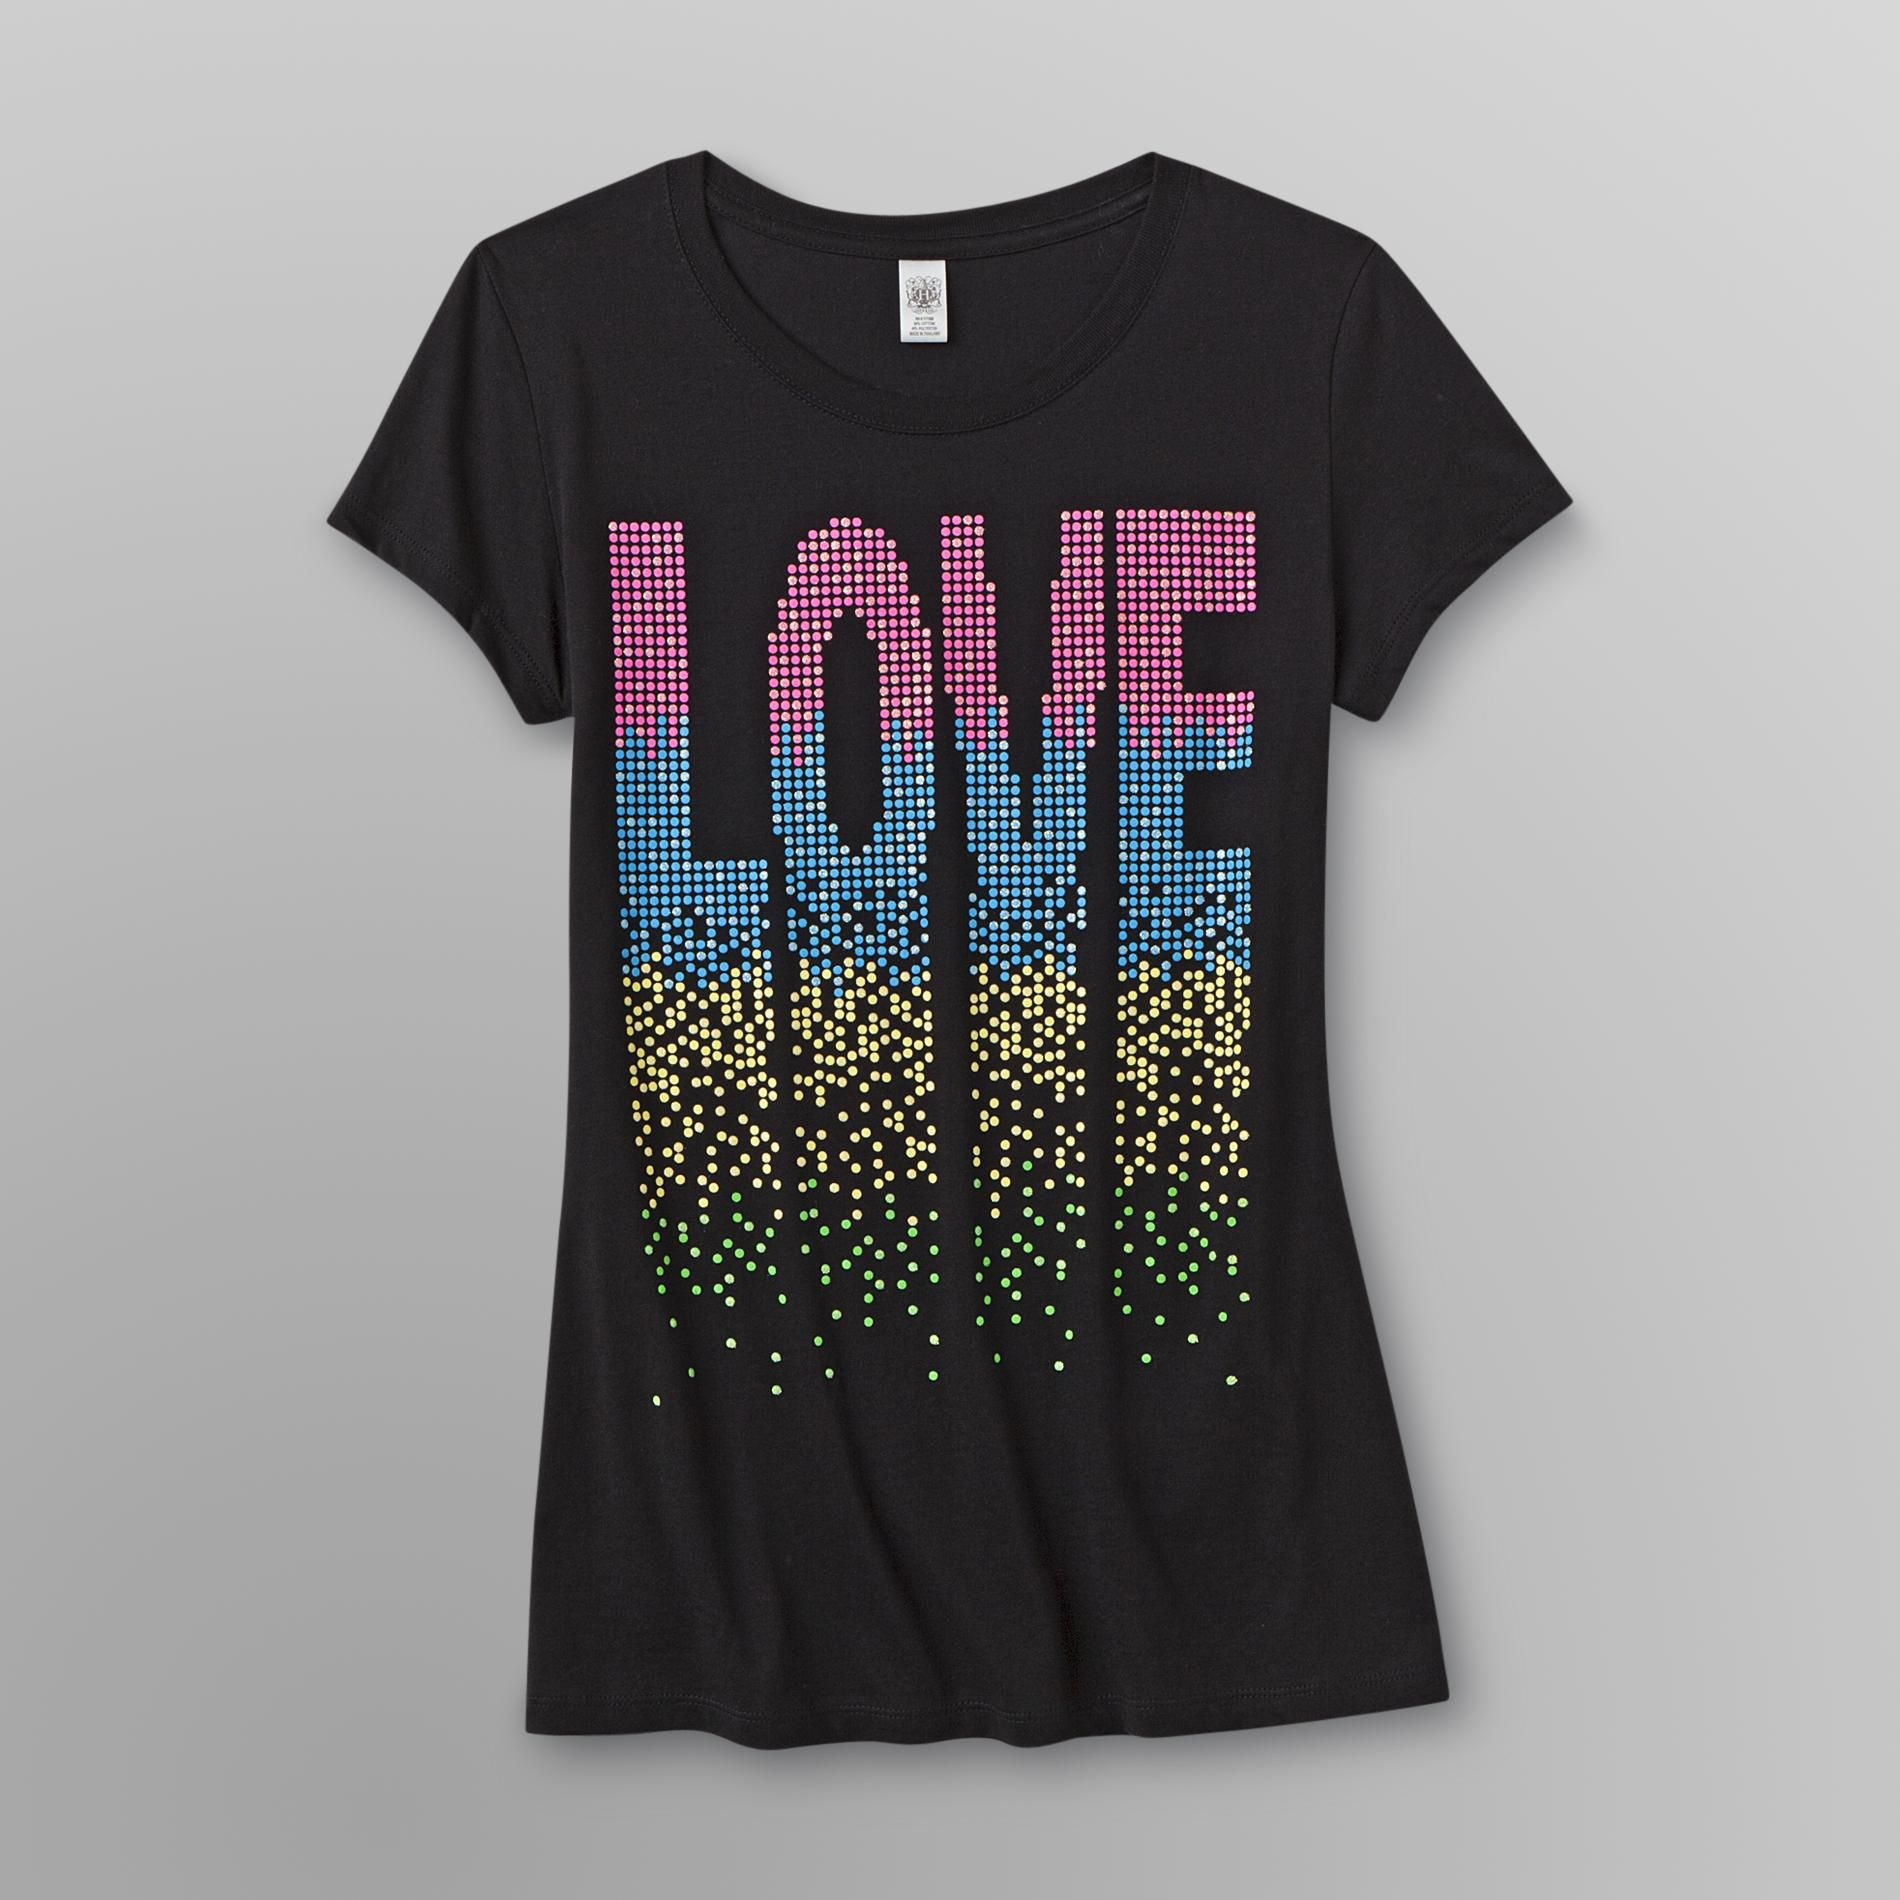 Hybrid Junior's Graphic T-Shirt - Fall in Love at Sears.com